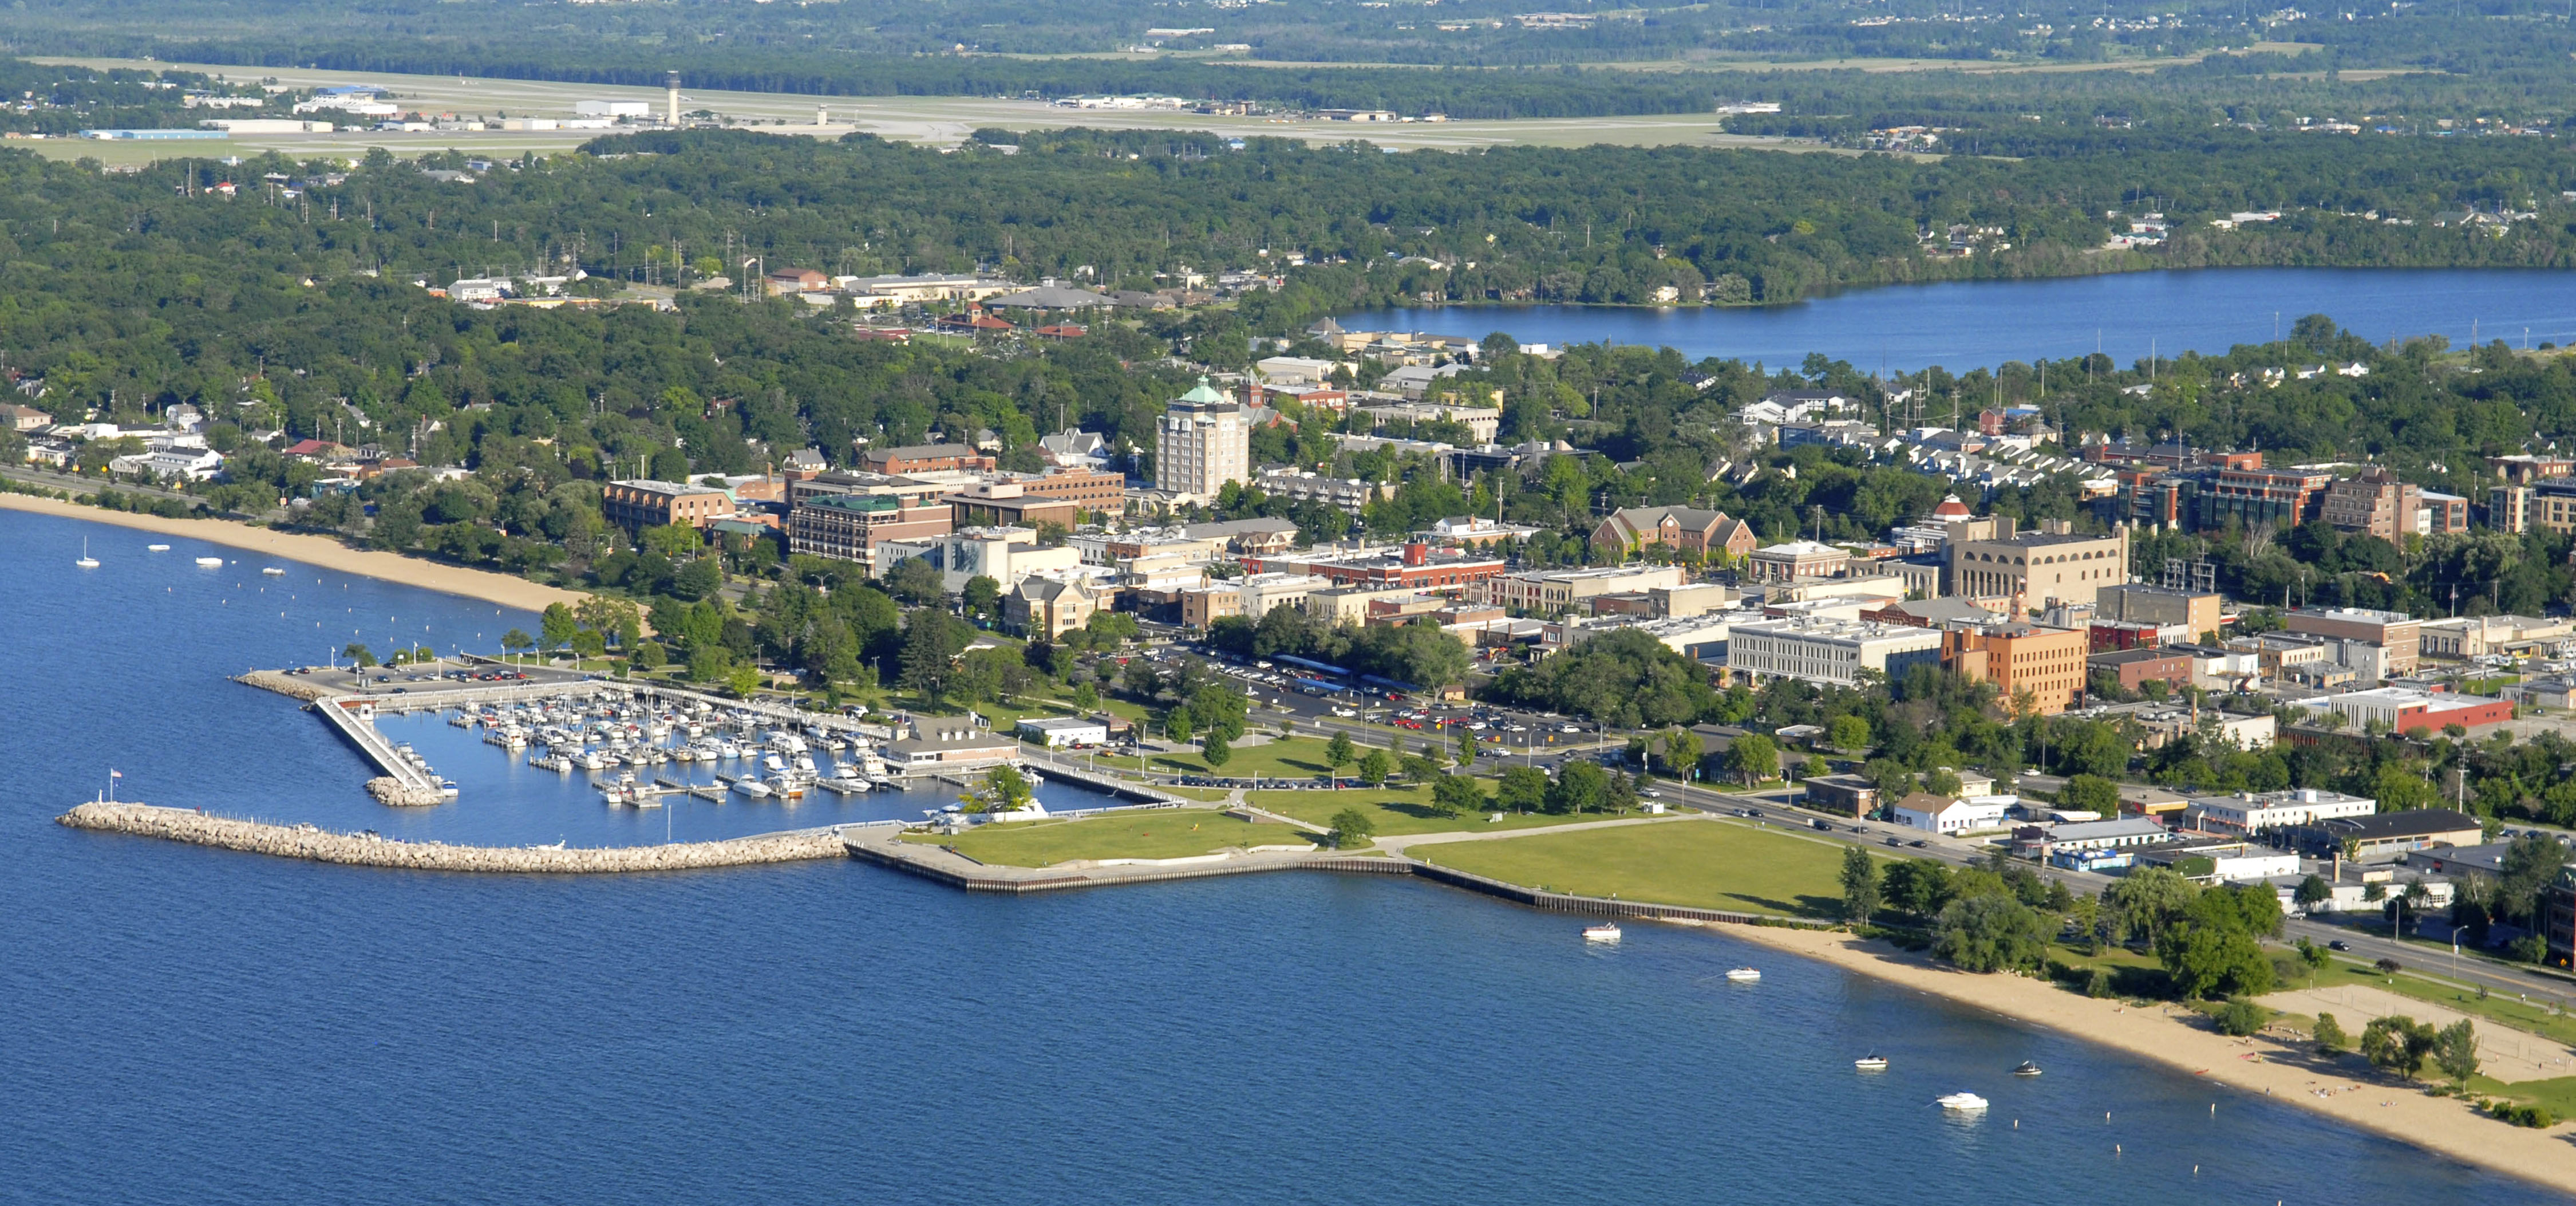 Hotels In Traverse City Mi On The Beach